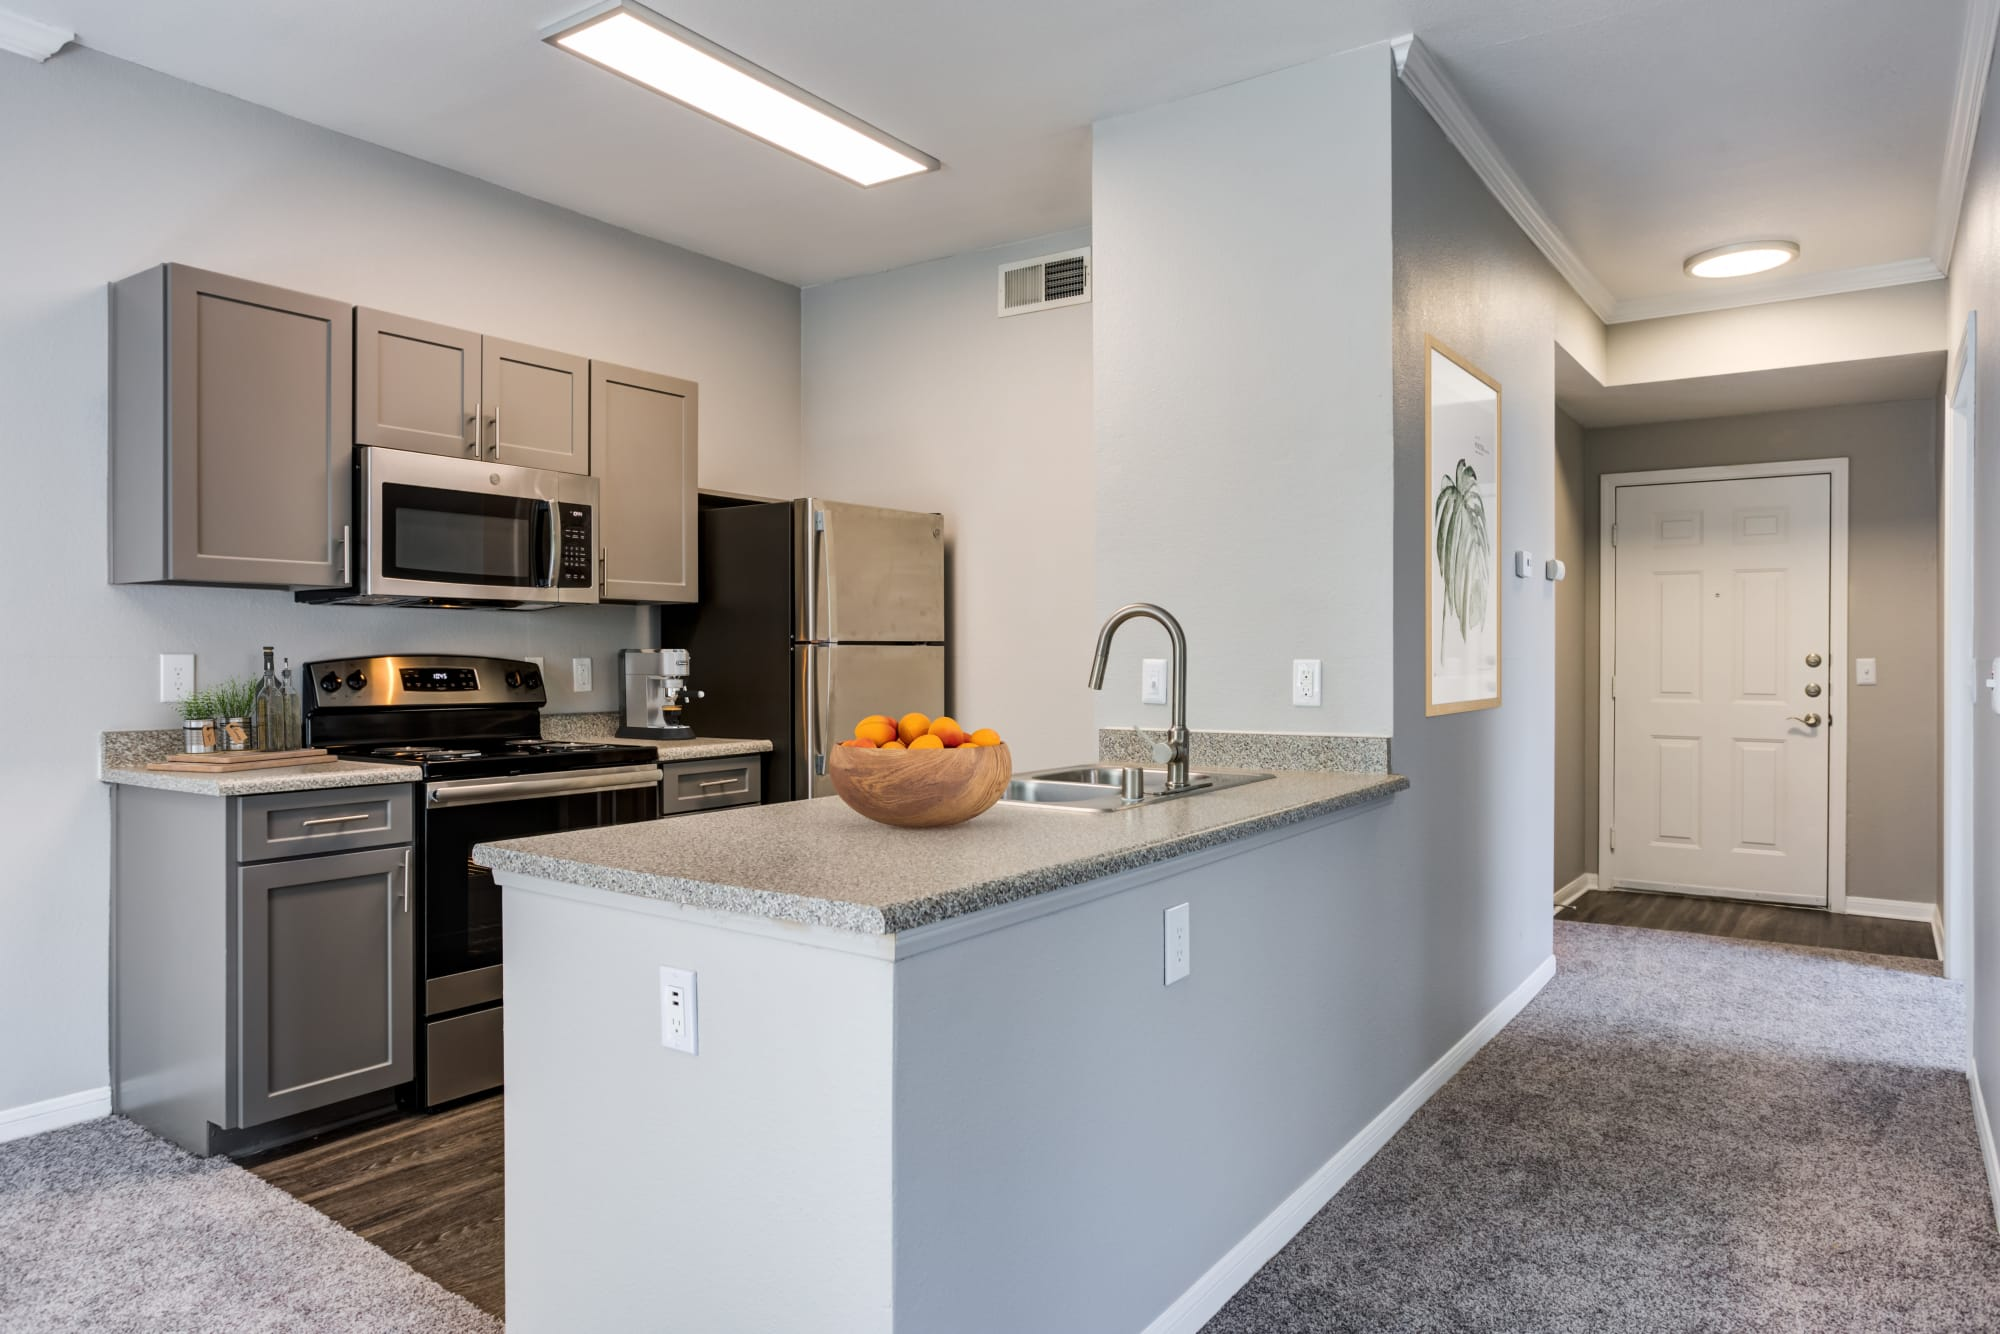 Grey Cabinetry Kitchen at Miramonte and Trovas in Sacramento, California